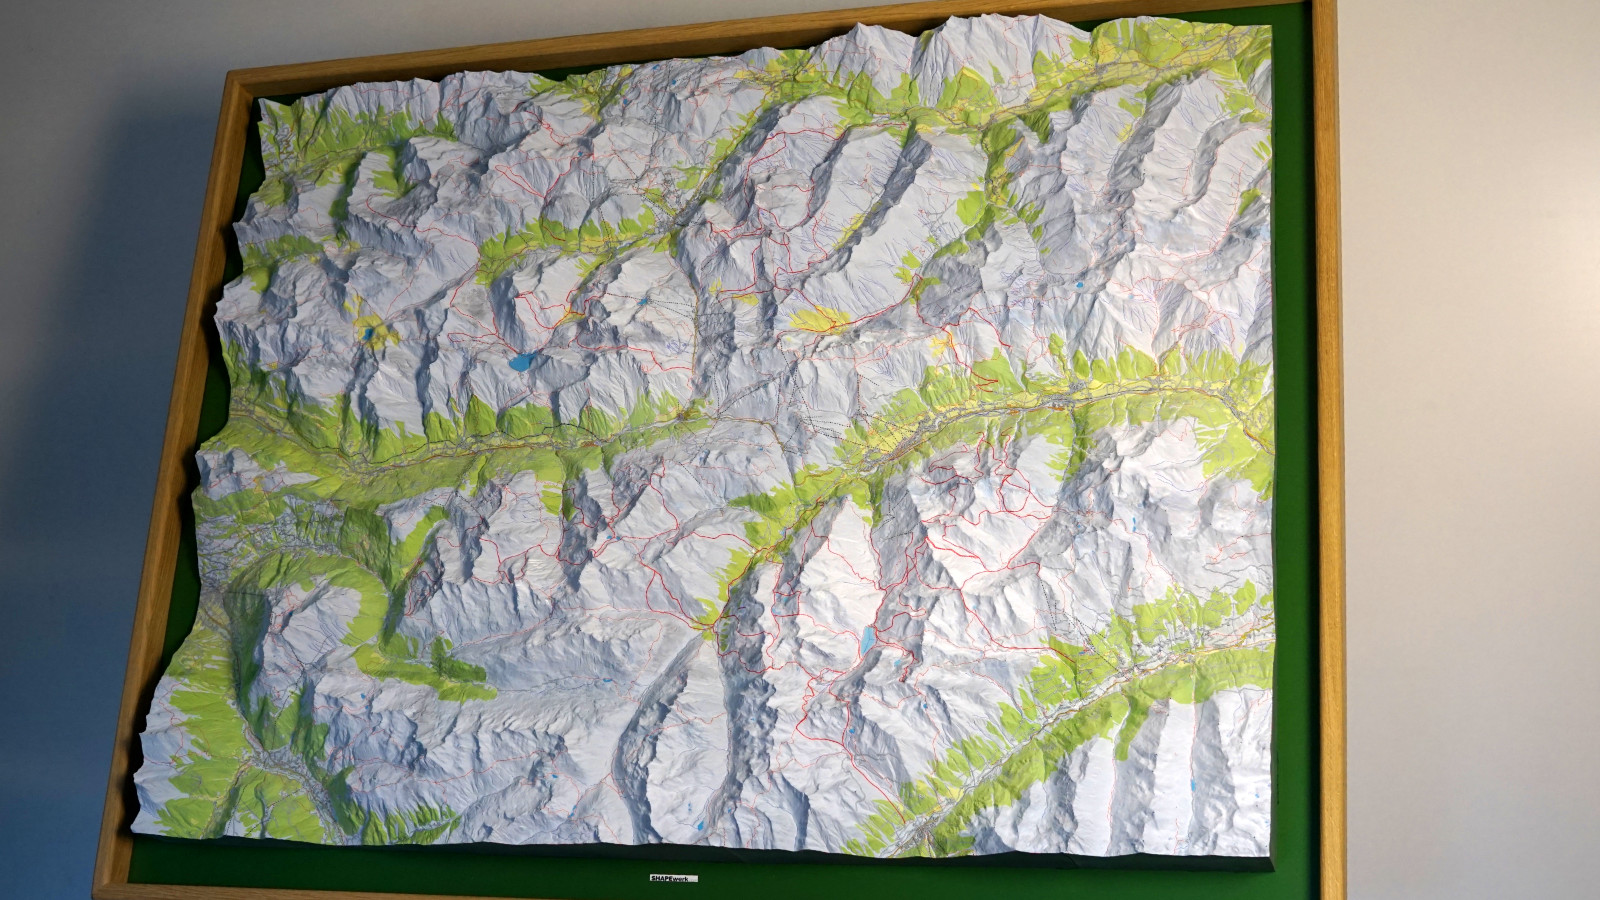 3D Precision Map HD Color Print: 114cm x 85cm x 13cm  - 5kg